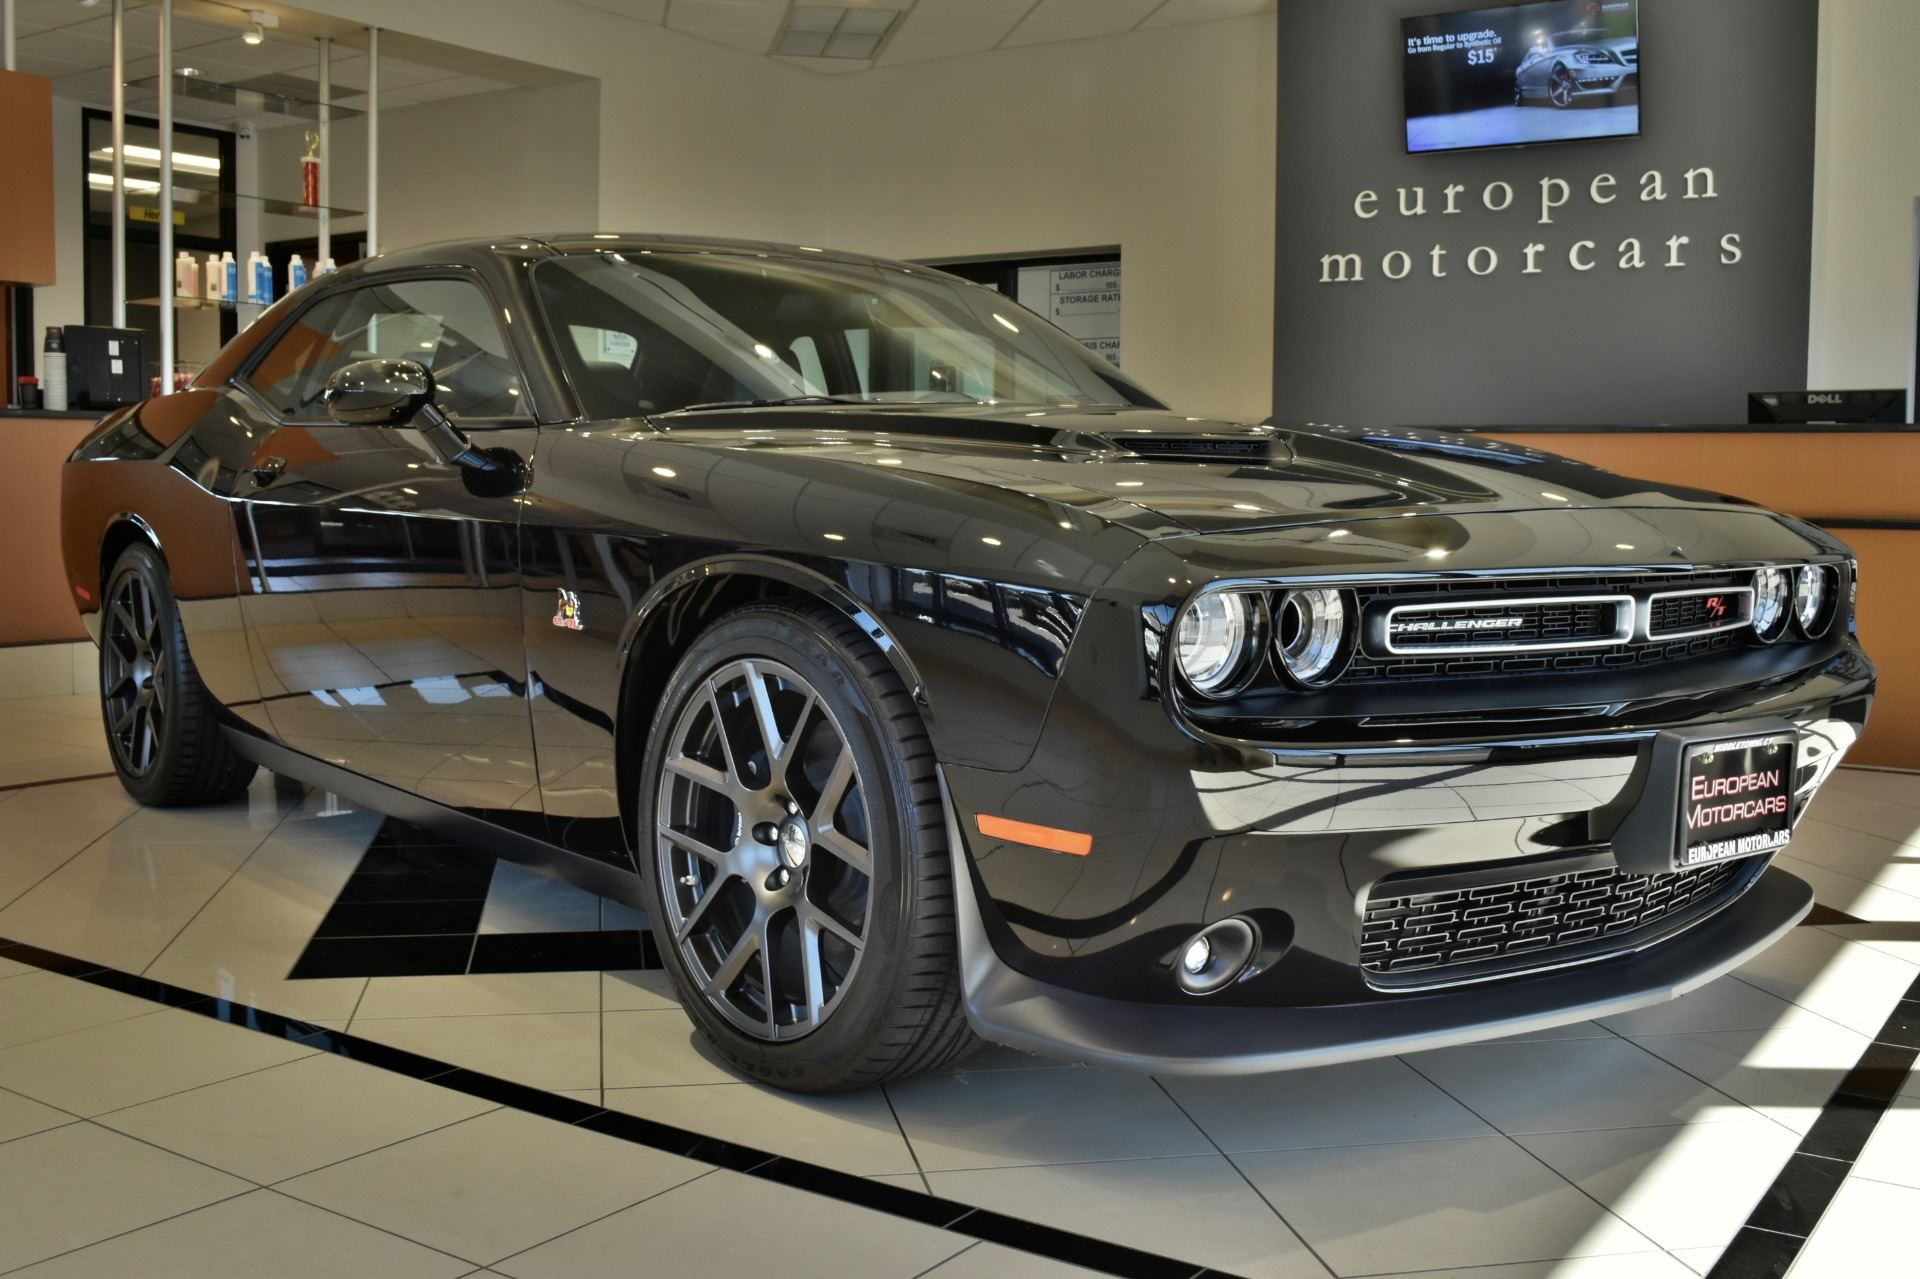 2016 dodge challenger r t scat pack for sale near for Euro motors collision center